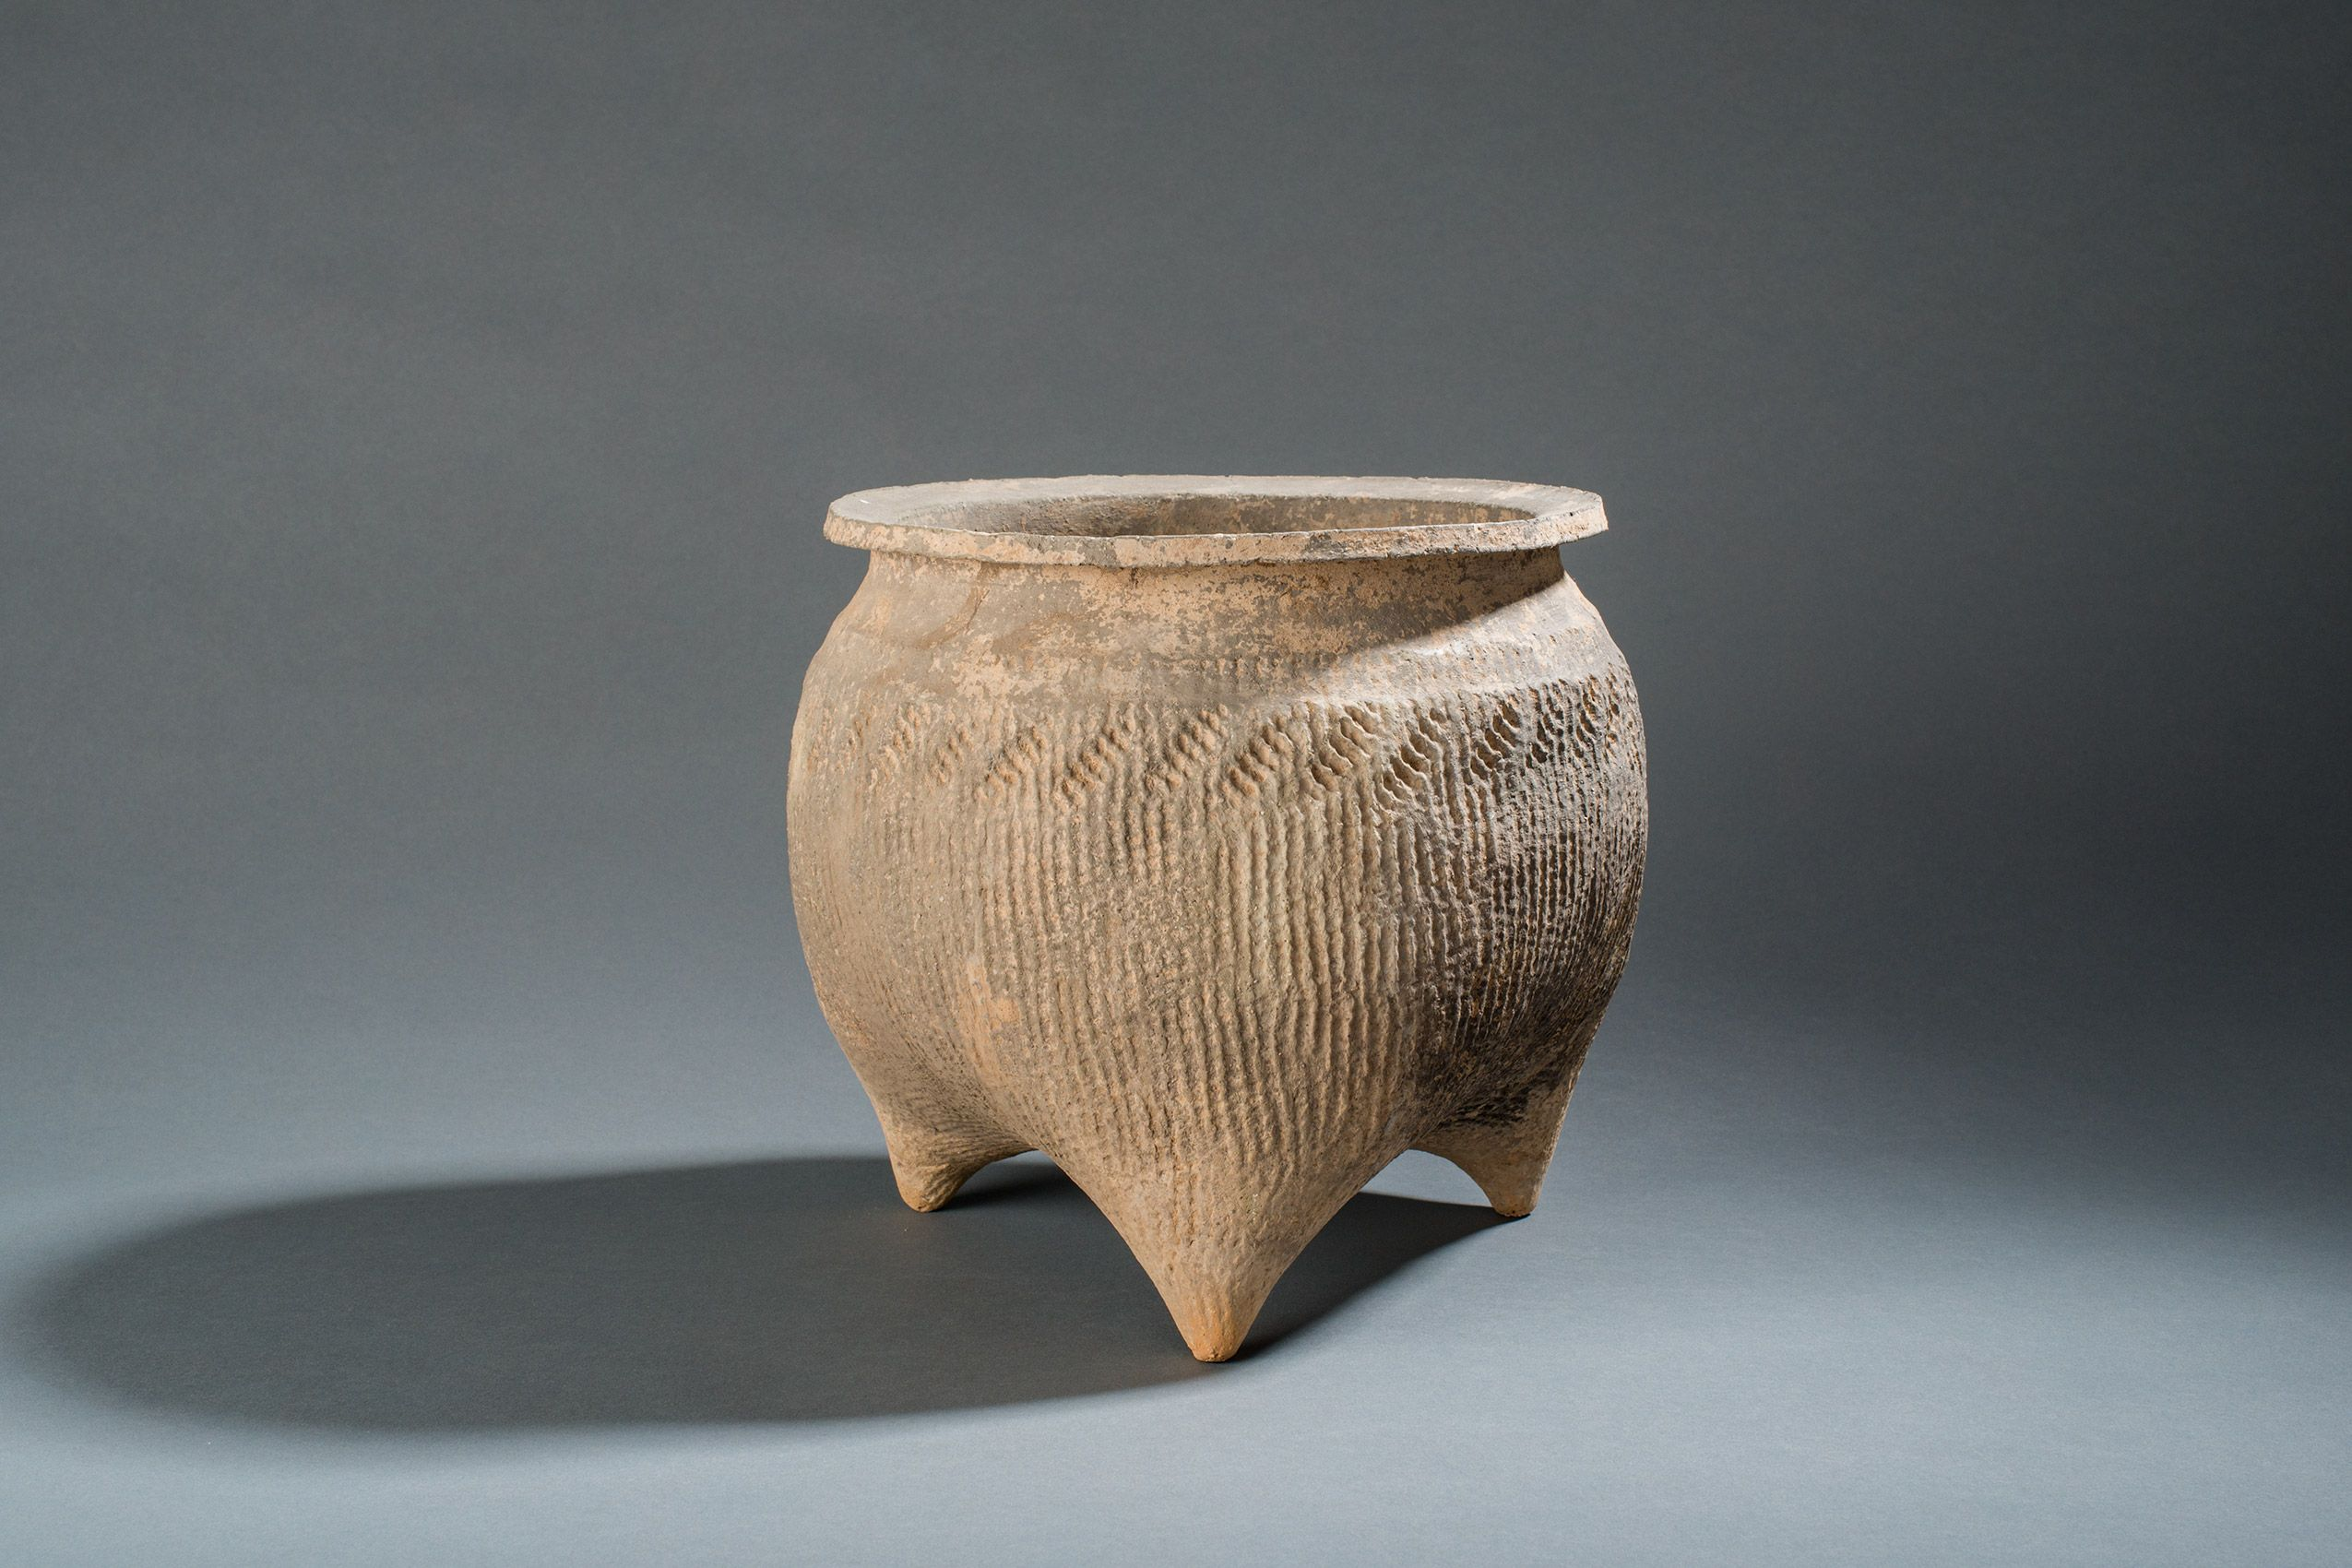 Carved earthenware pot